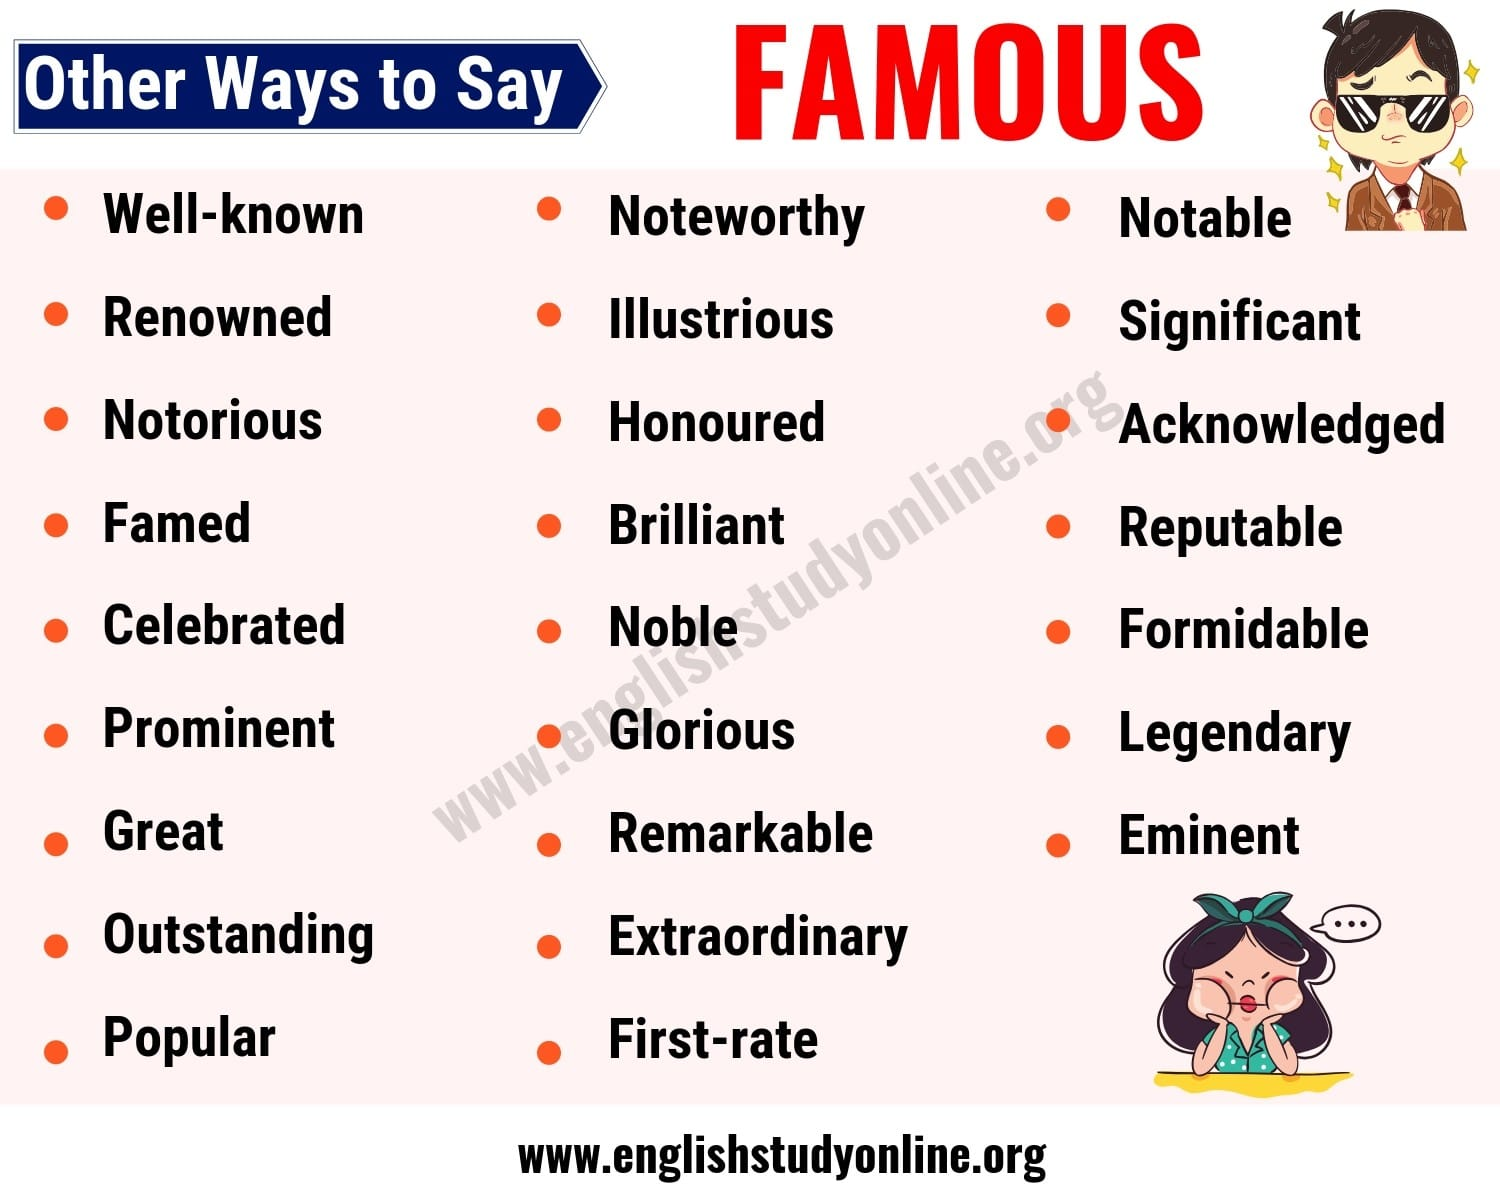 Famous Synonym